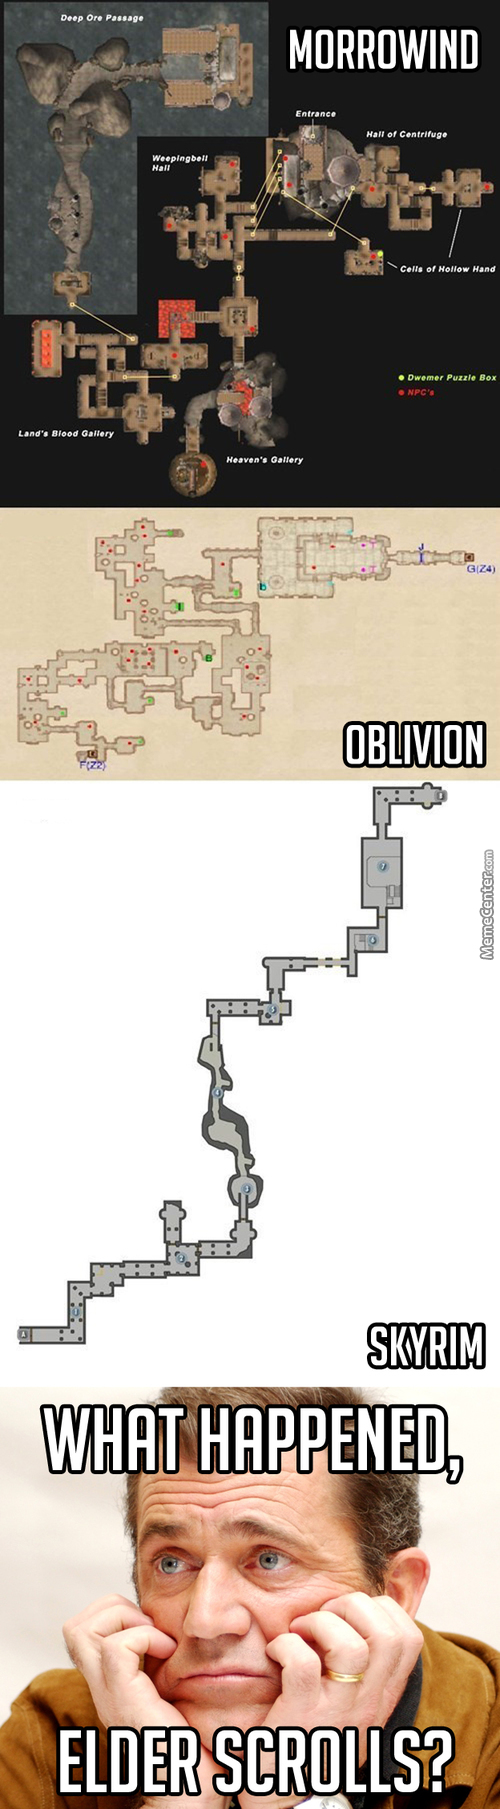 Comparing Elder Scrolls Map Layouts